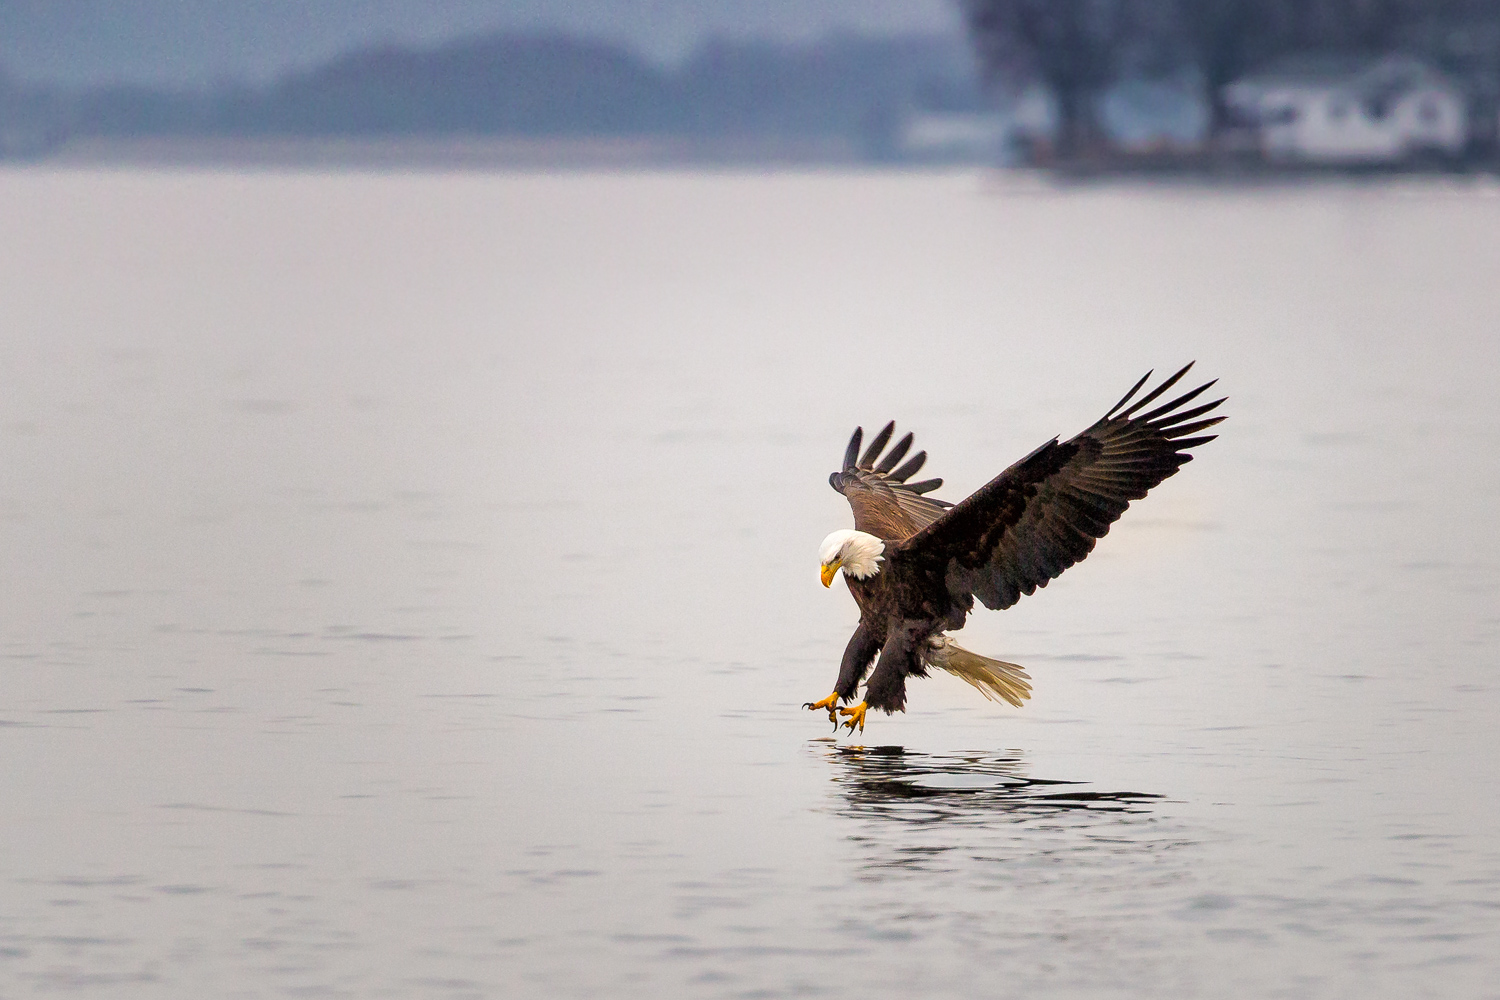 """Fast Food"", a Bald Eagle fishing the Mississippi River at Lock & Dam 14 near Le Claire, Iowa."